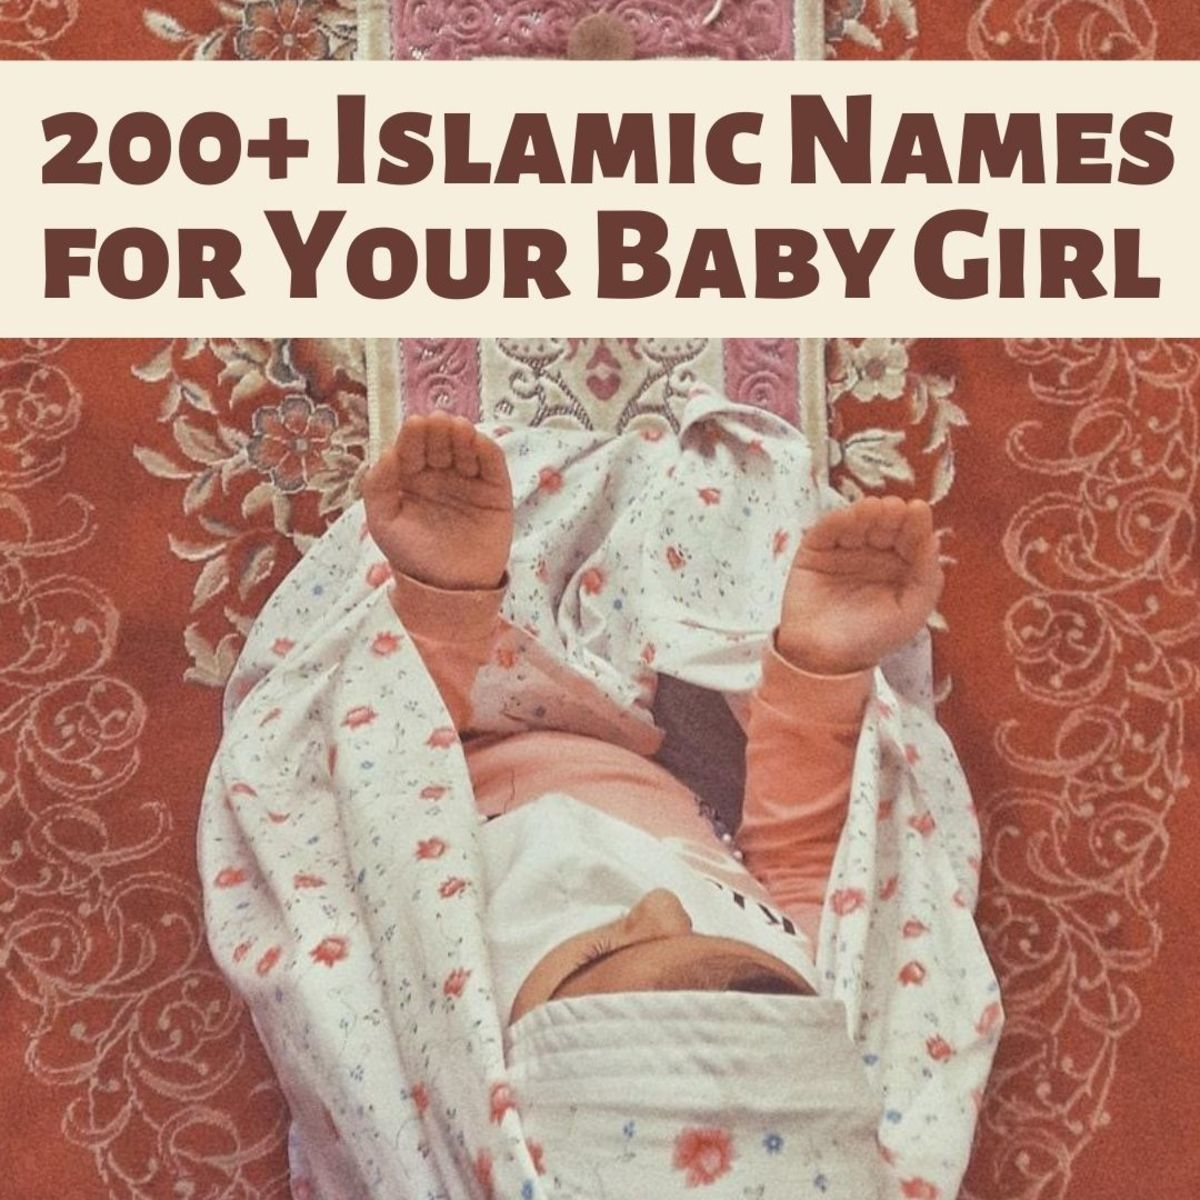 200+ Islamic Names for Muslim Baby Girls (From the Qur'an)